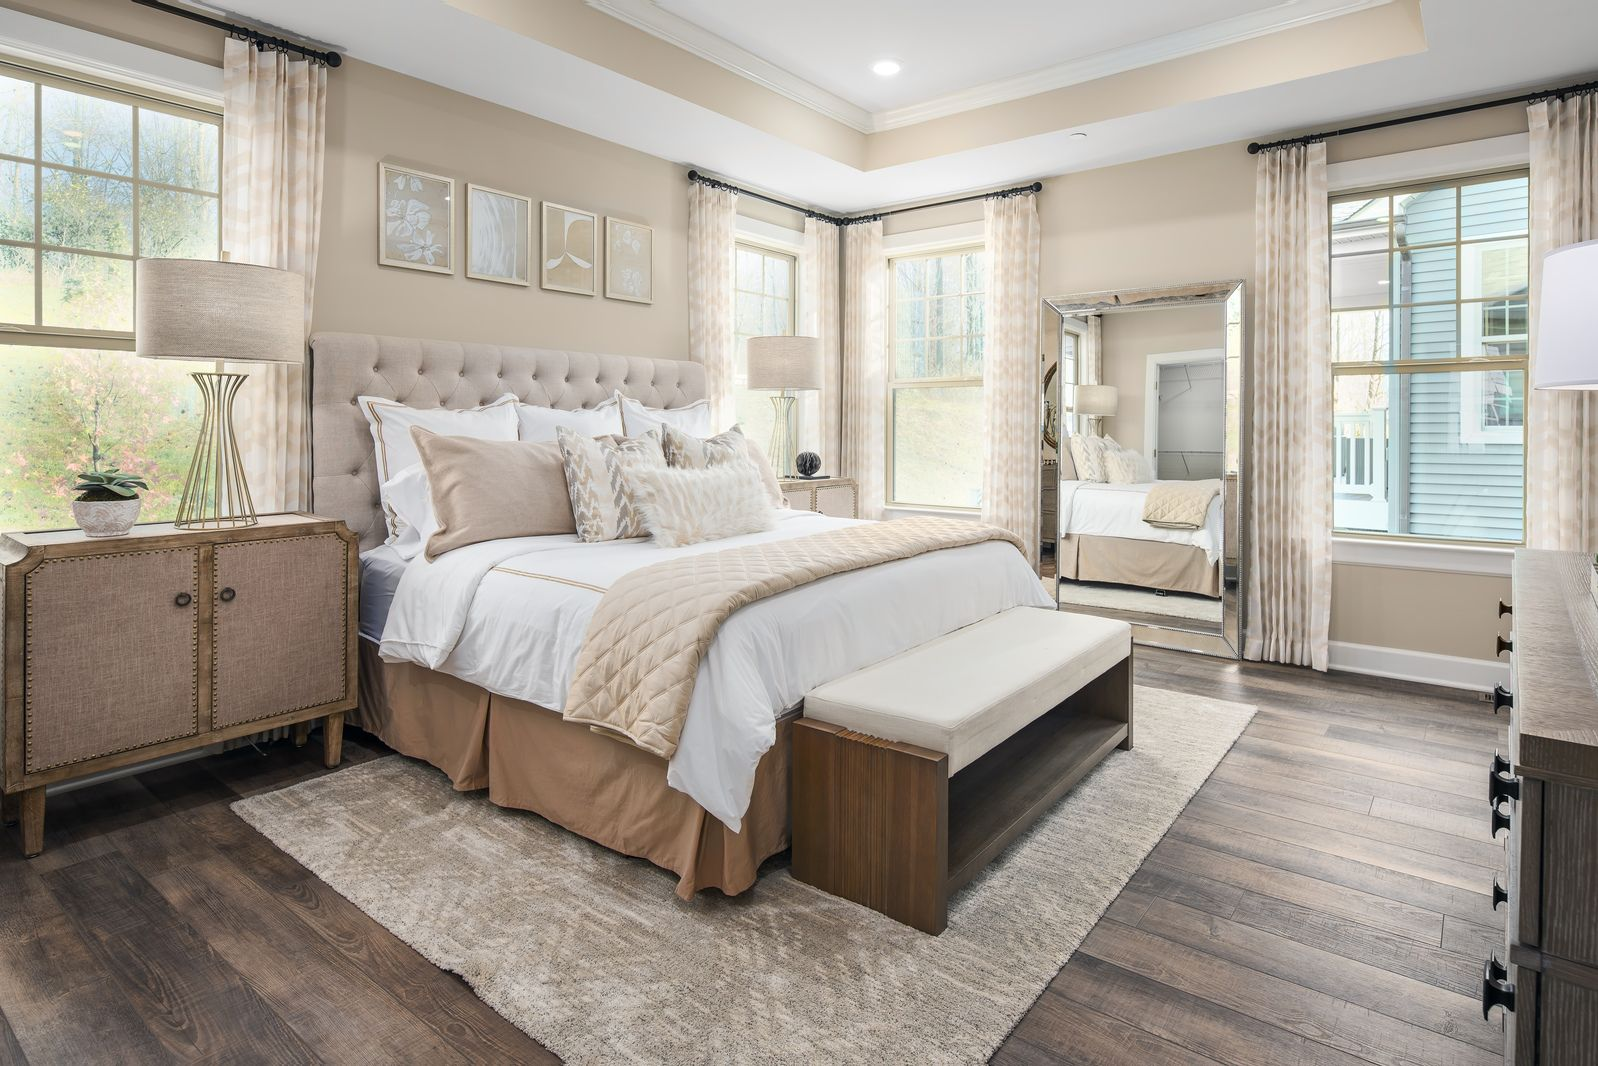 Bedroom featured in the Bennington By NVHomes in Philadelphia, PA